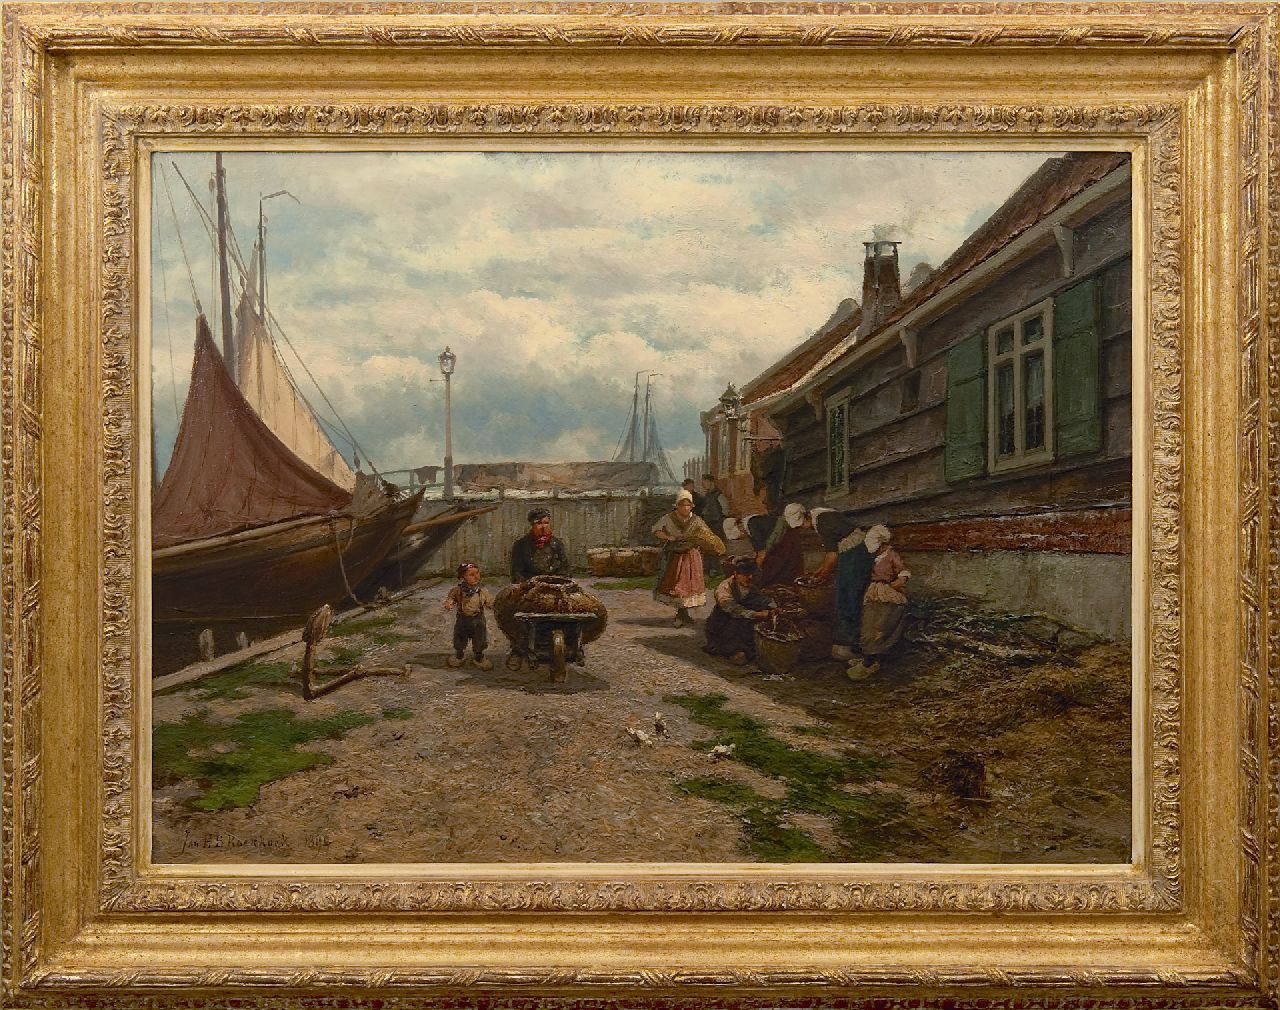 Koekkoek J.H.B.  | Johannes Hermanus Barend 'Jan H.B.' Koekkoek | Paintings offered for sale | Fisherwomen selling their catch a Zuiderzee harbour, oil on panel 53.2 x 73.0 cm, signed l.l. and dated 1894